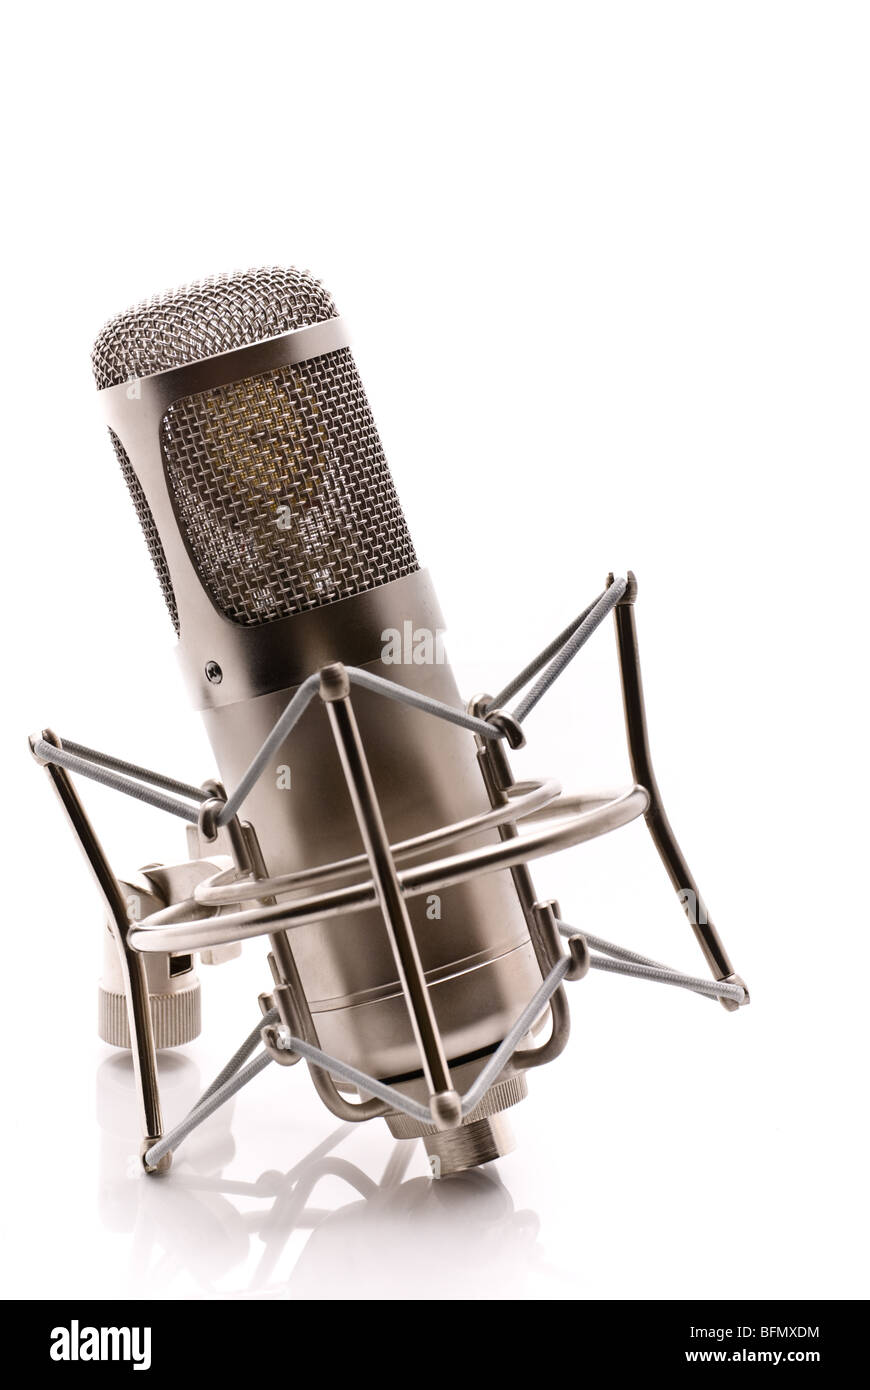 A large diaphragm microphone and shockmount with a partial reflection against a white background - Stock Image